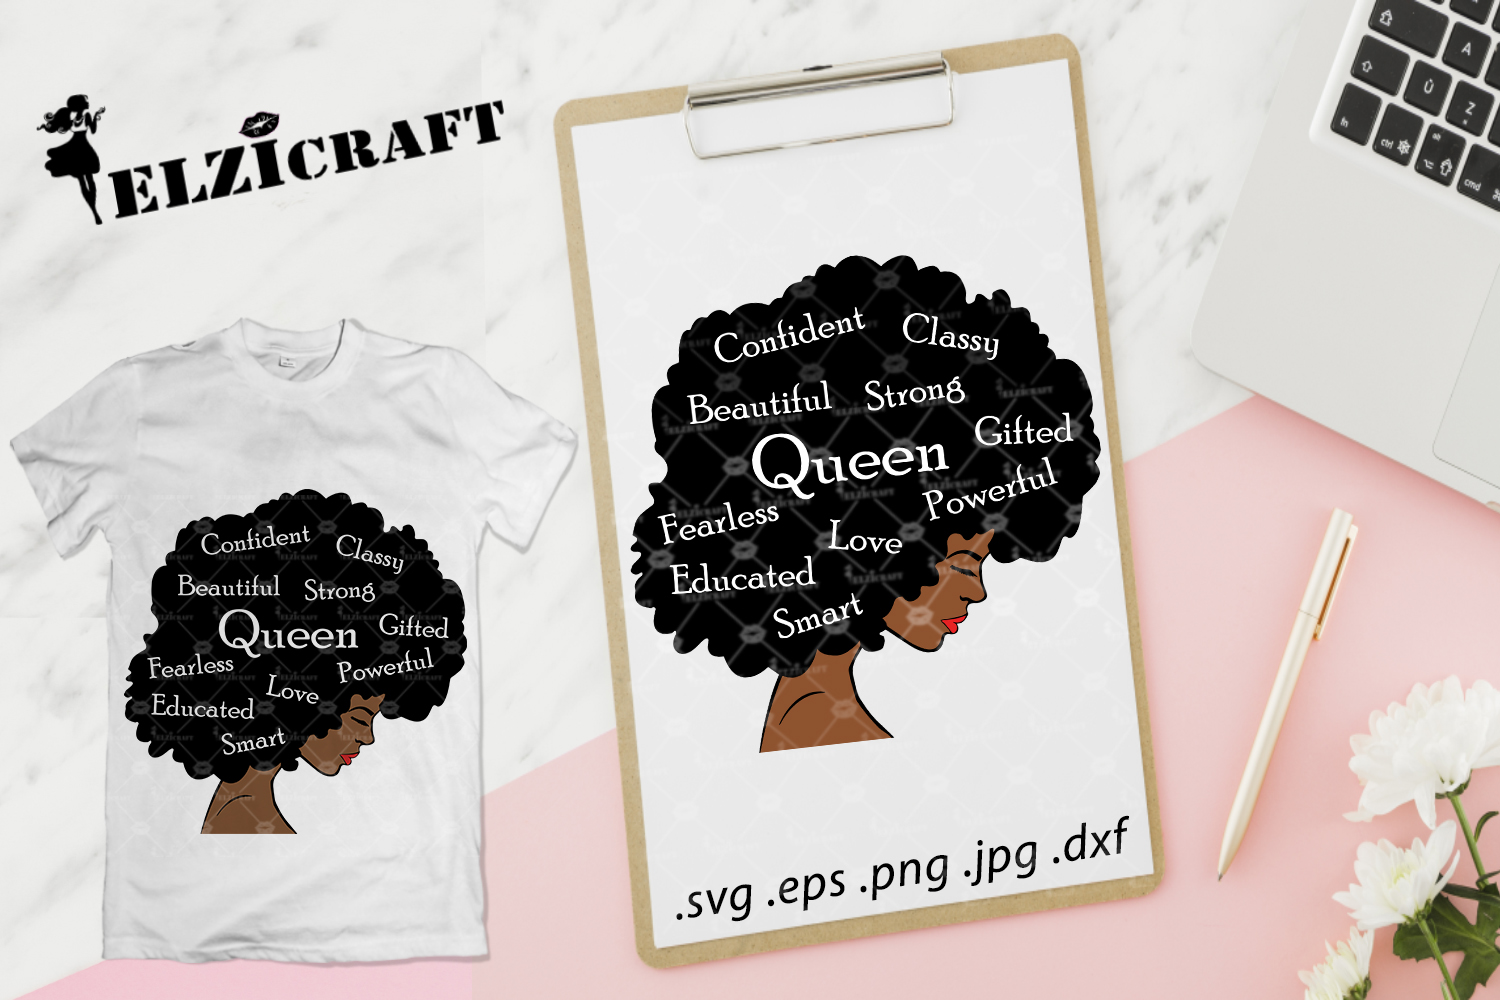 Download Free Afro Woman Queen Life Afro Hair Graphic By Elzicraft for Cricut Explore, Silhouette and other cutting machines.